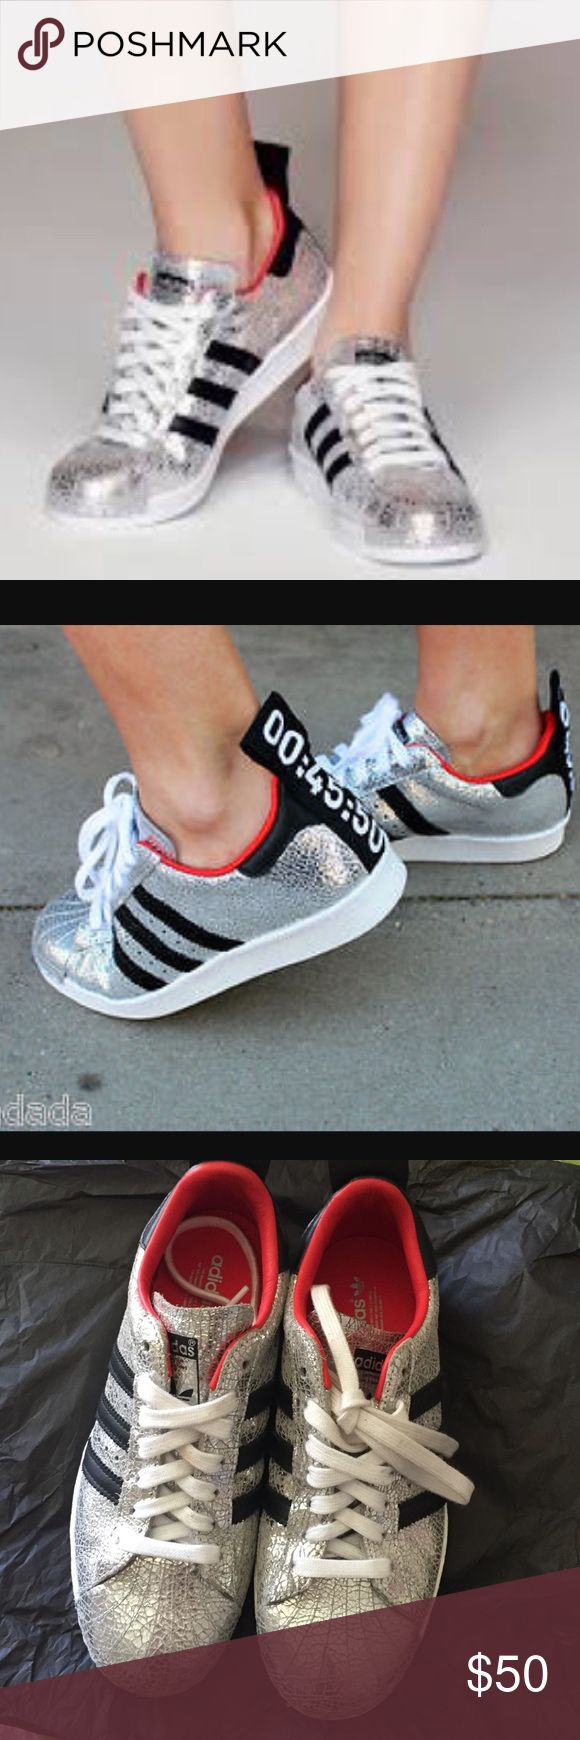 Topshop for Adidas superstar Slightly worn but still in good condition. Size runs big. Adidas Shoes Sneakers